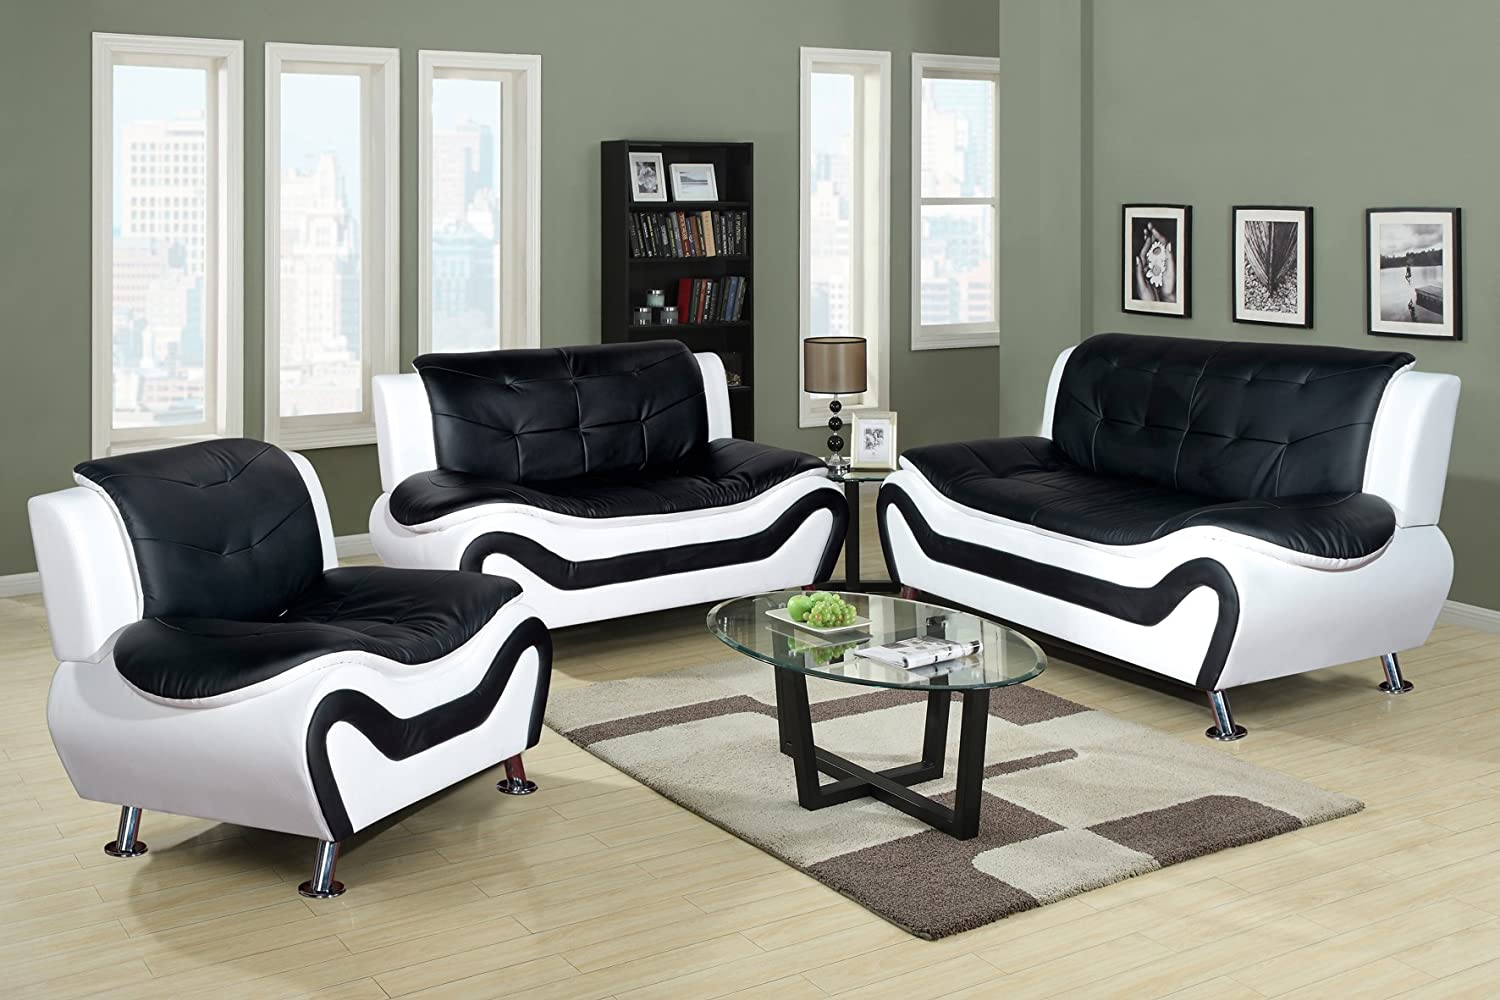 Fabulous Beverly Fine Furniture 3 Piece Aldo Modern Sofa Set Black White Gamerscity Chair Design For Home Gamerscityorg